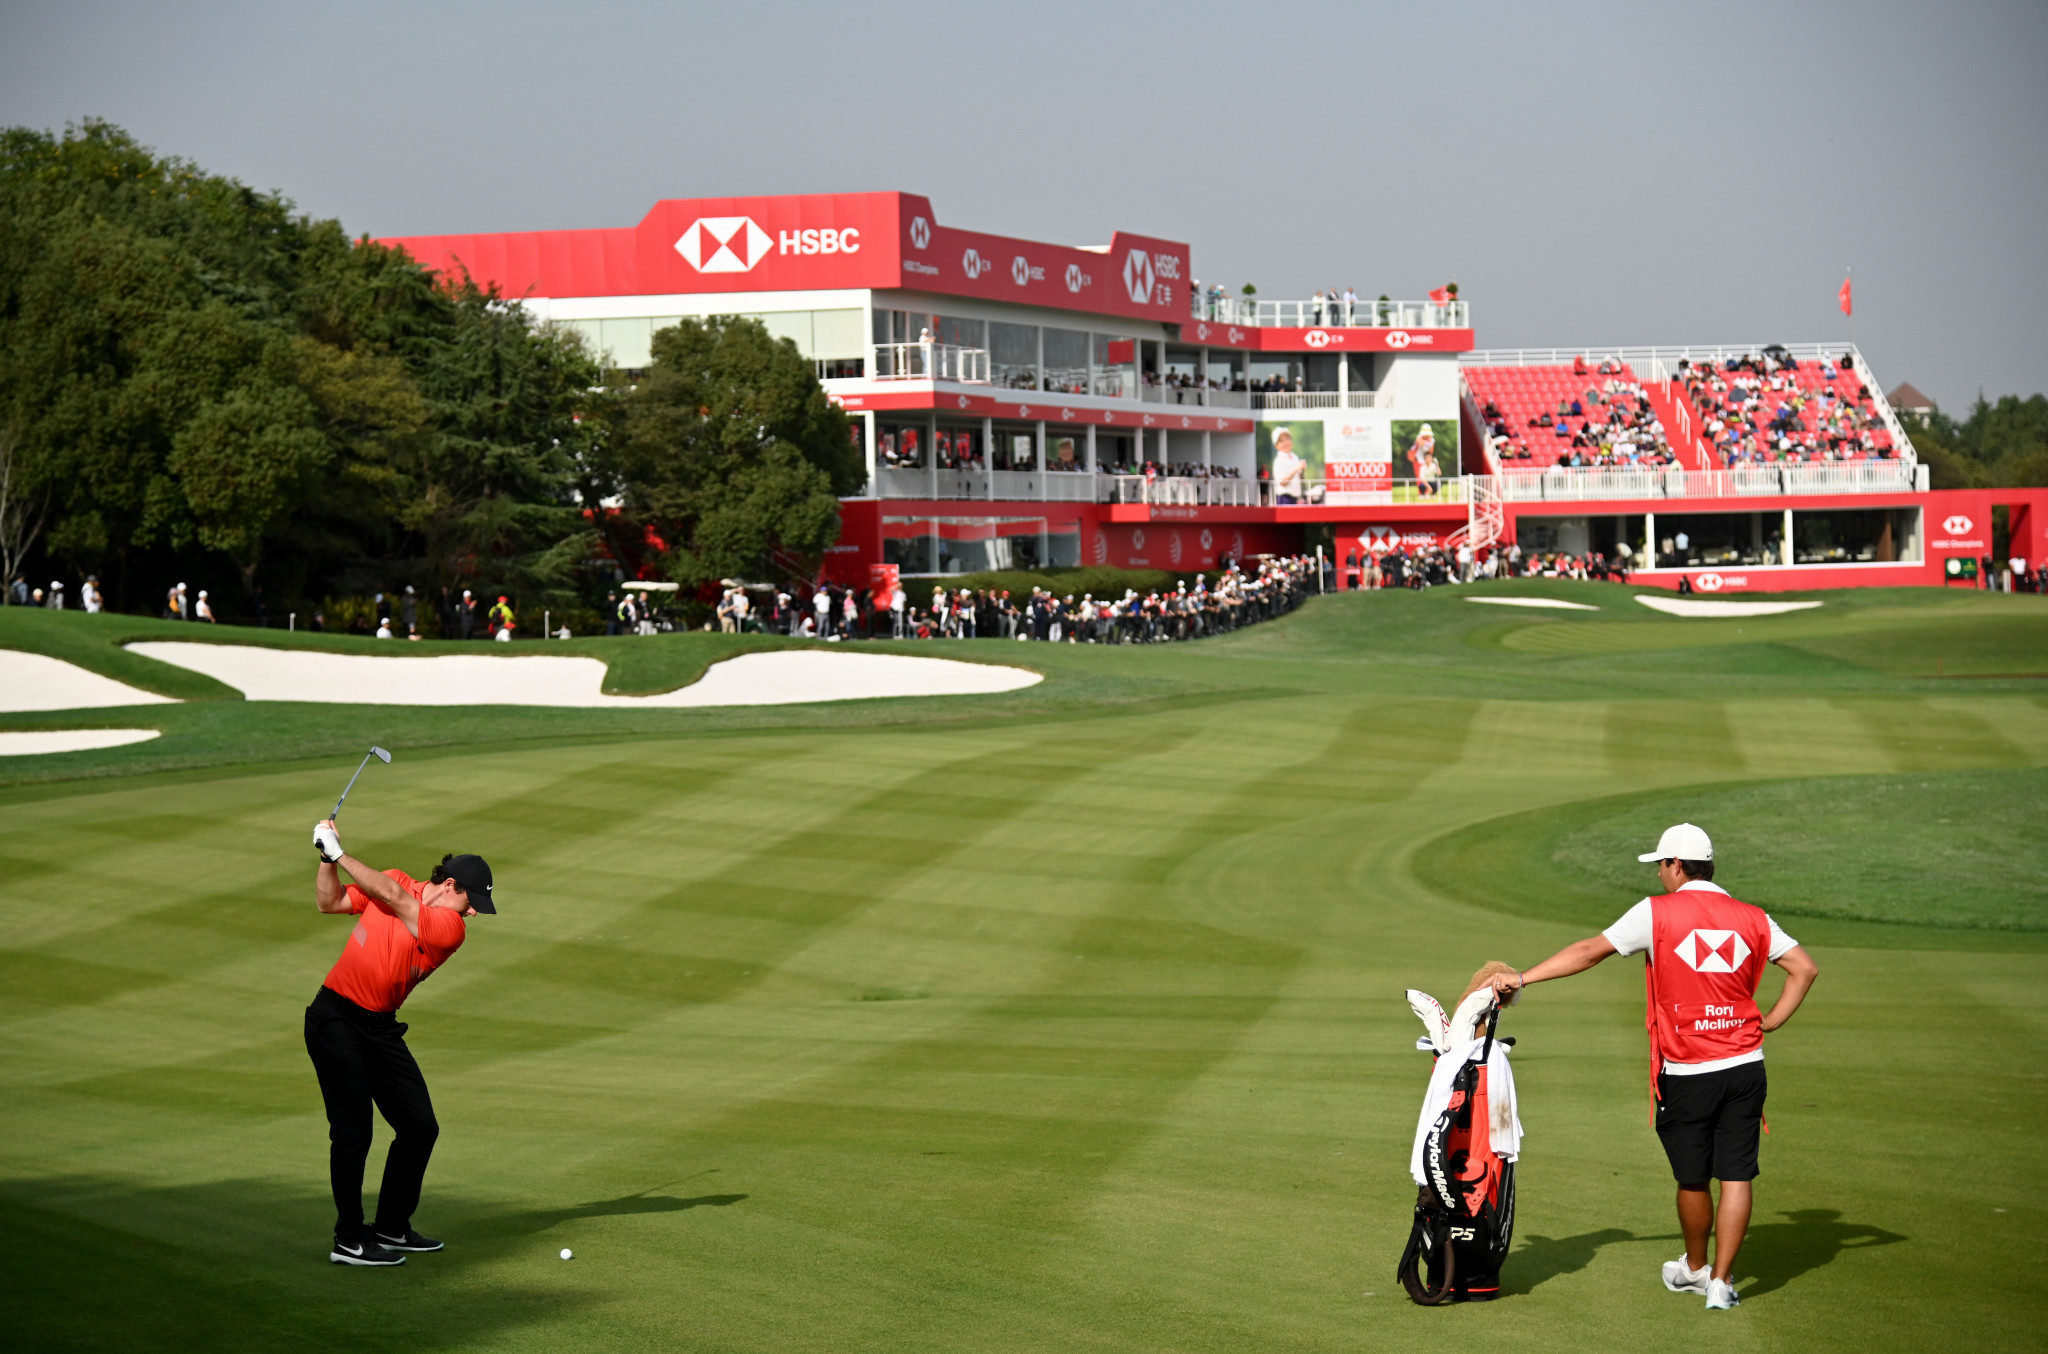 Late eagle from super McIlroy wows WGC-HSBC Champions